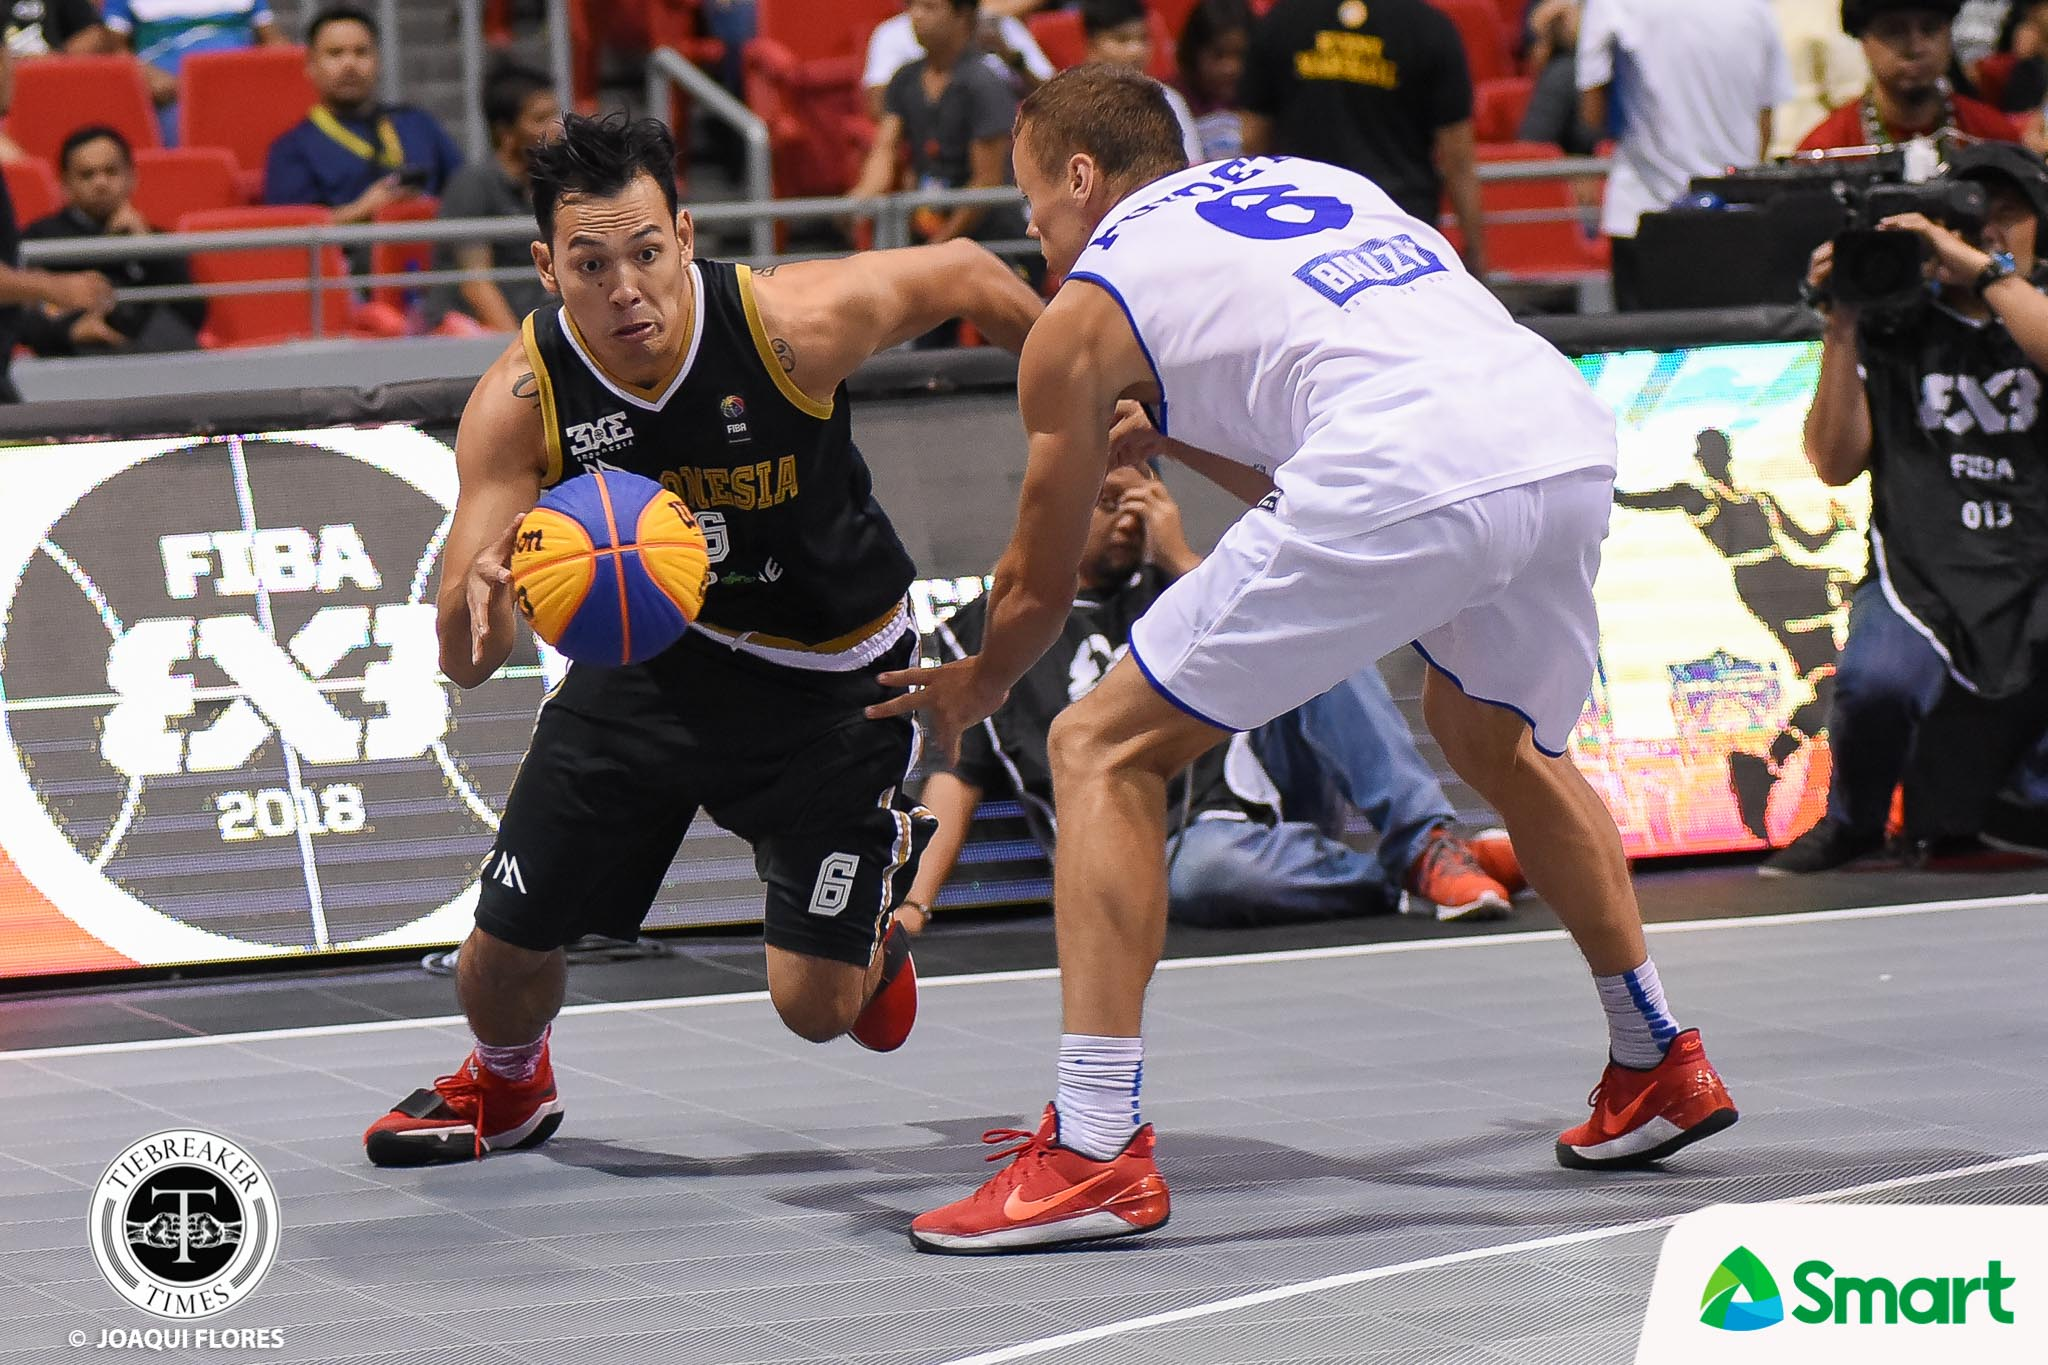 Tiebreaker Times On-vacation Biboy Enguio answers call for Indonesia 2018 FIBA 3X3 World Cup 3x3 Basketball News  Indonesia (Basketball) Biboy Enguio 2018 FIBA 3X3 World Cup - Men's